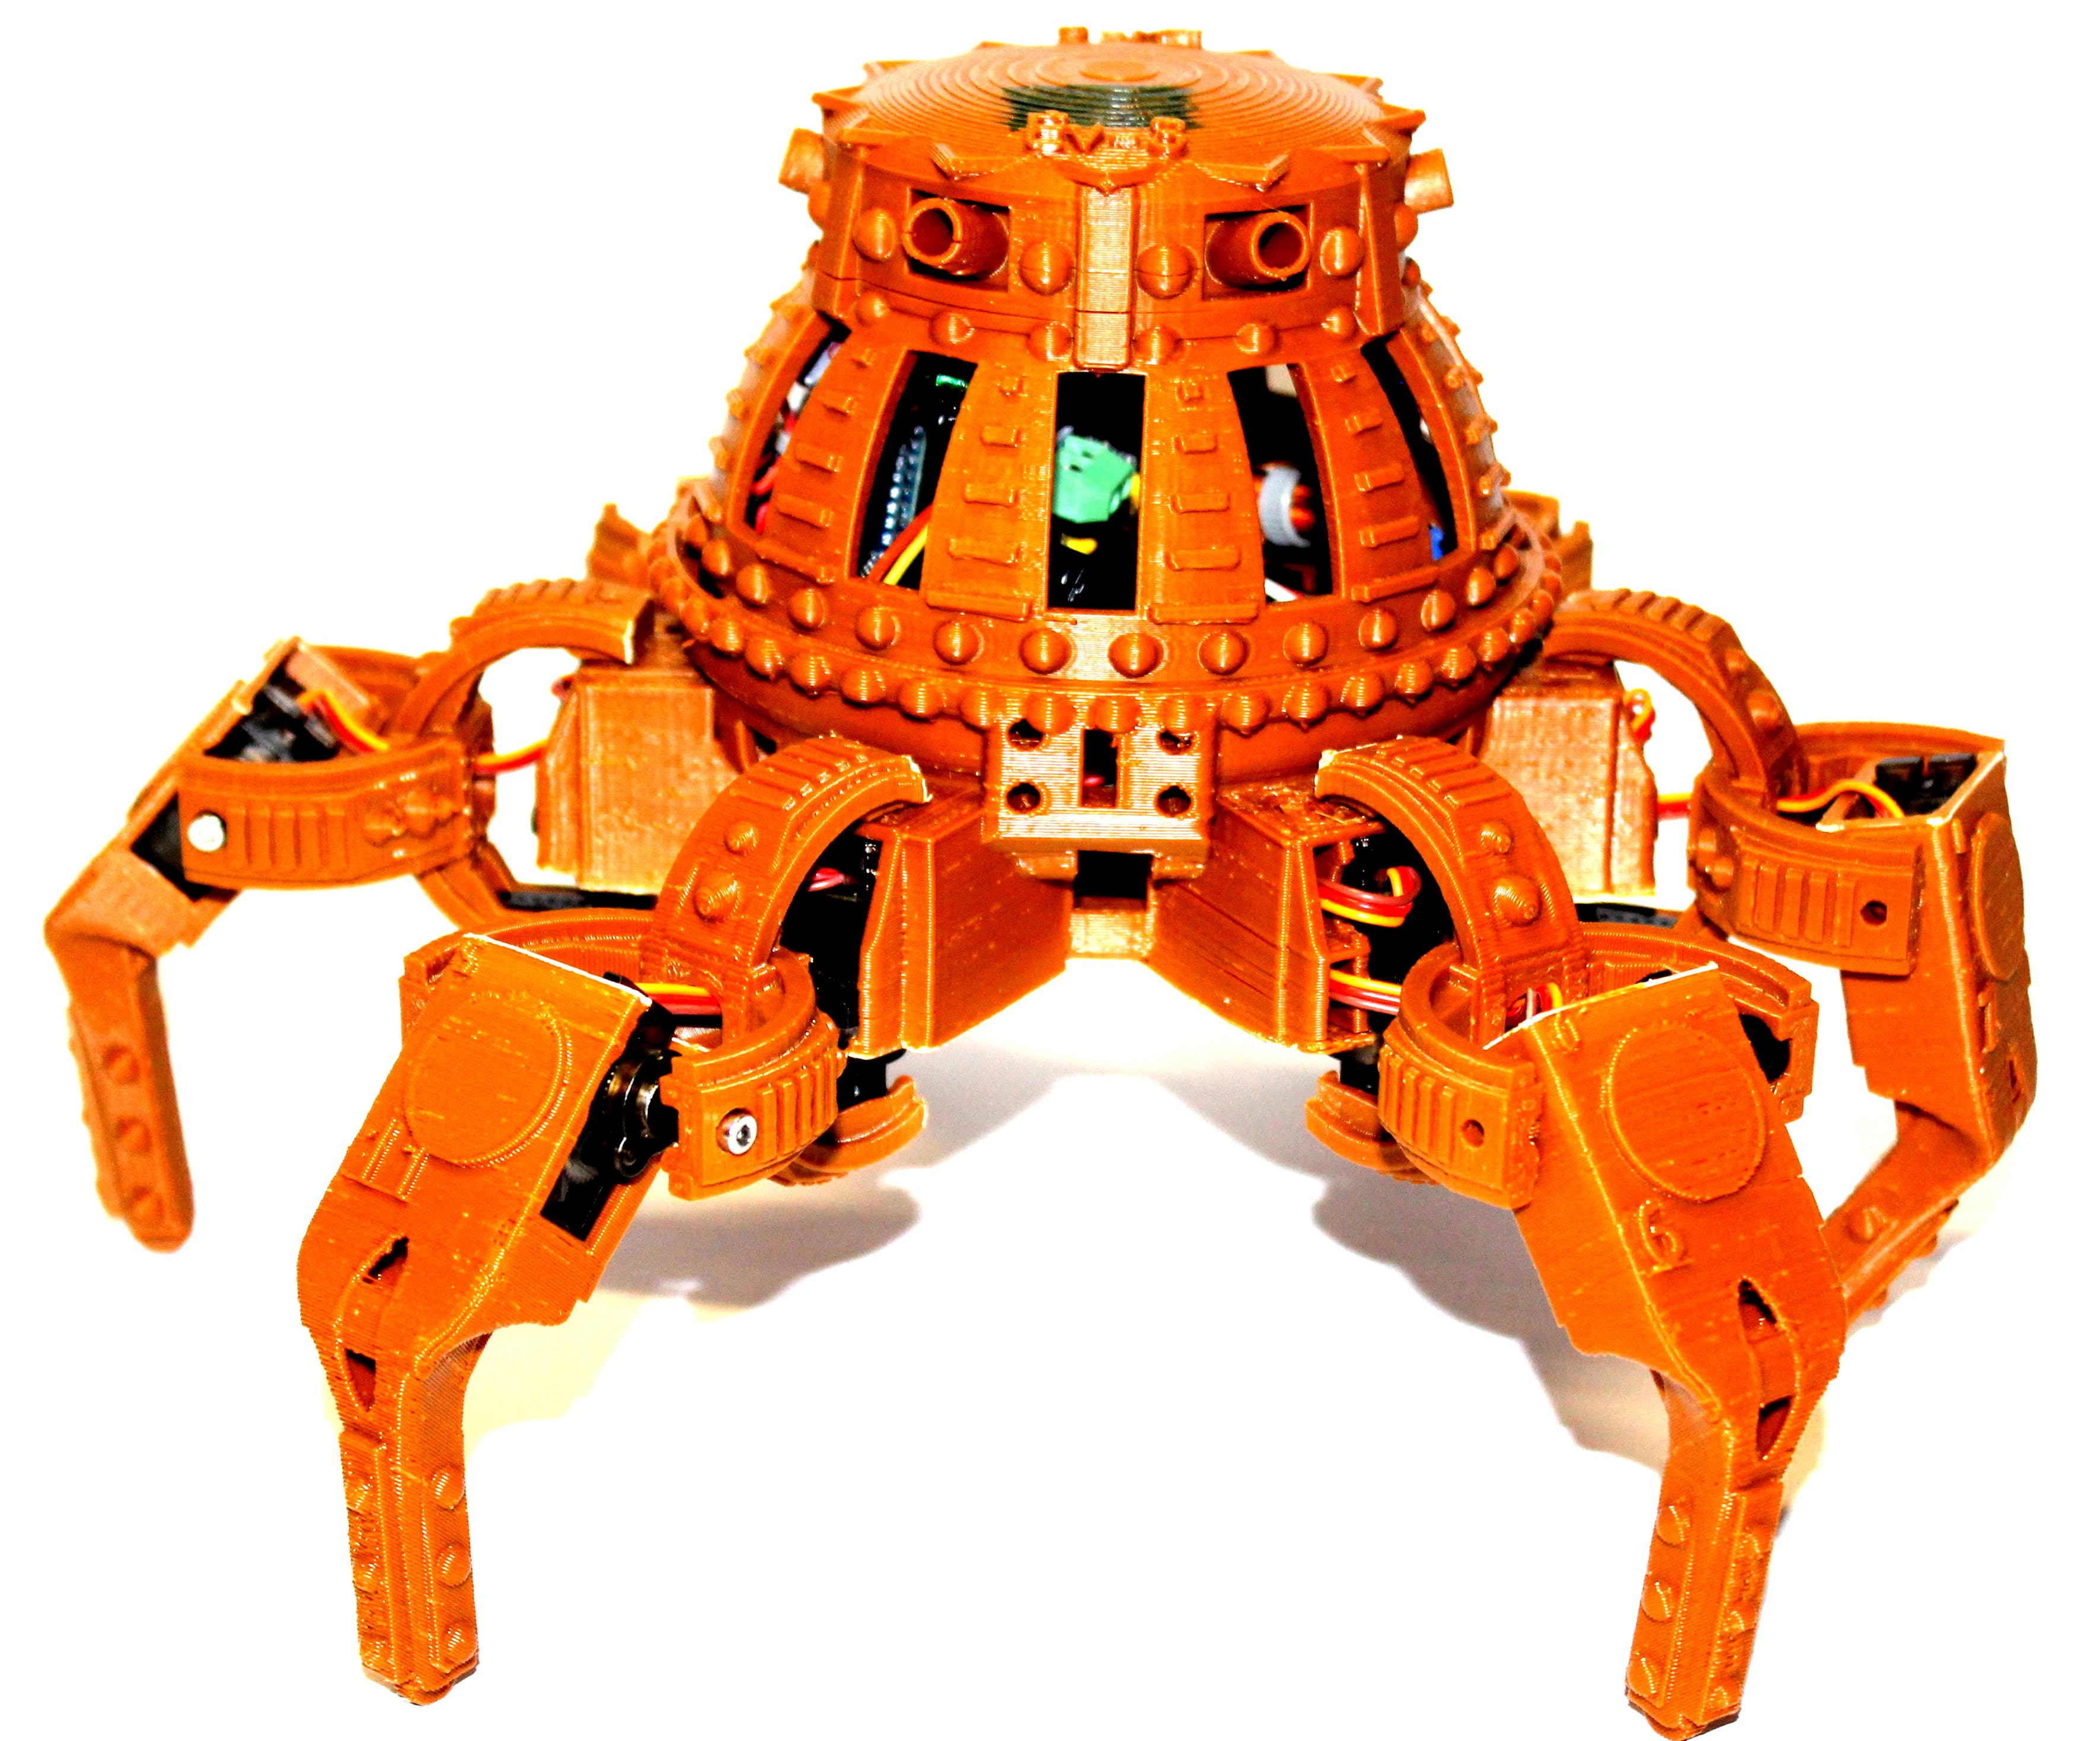 This amazing Steampunk version of Vorpal was designed by a high school student, Evan Gagnon